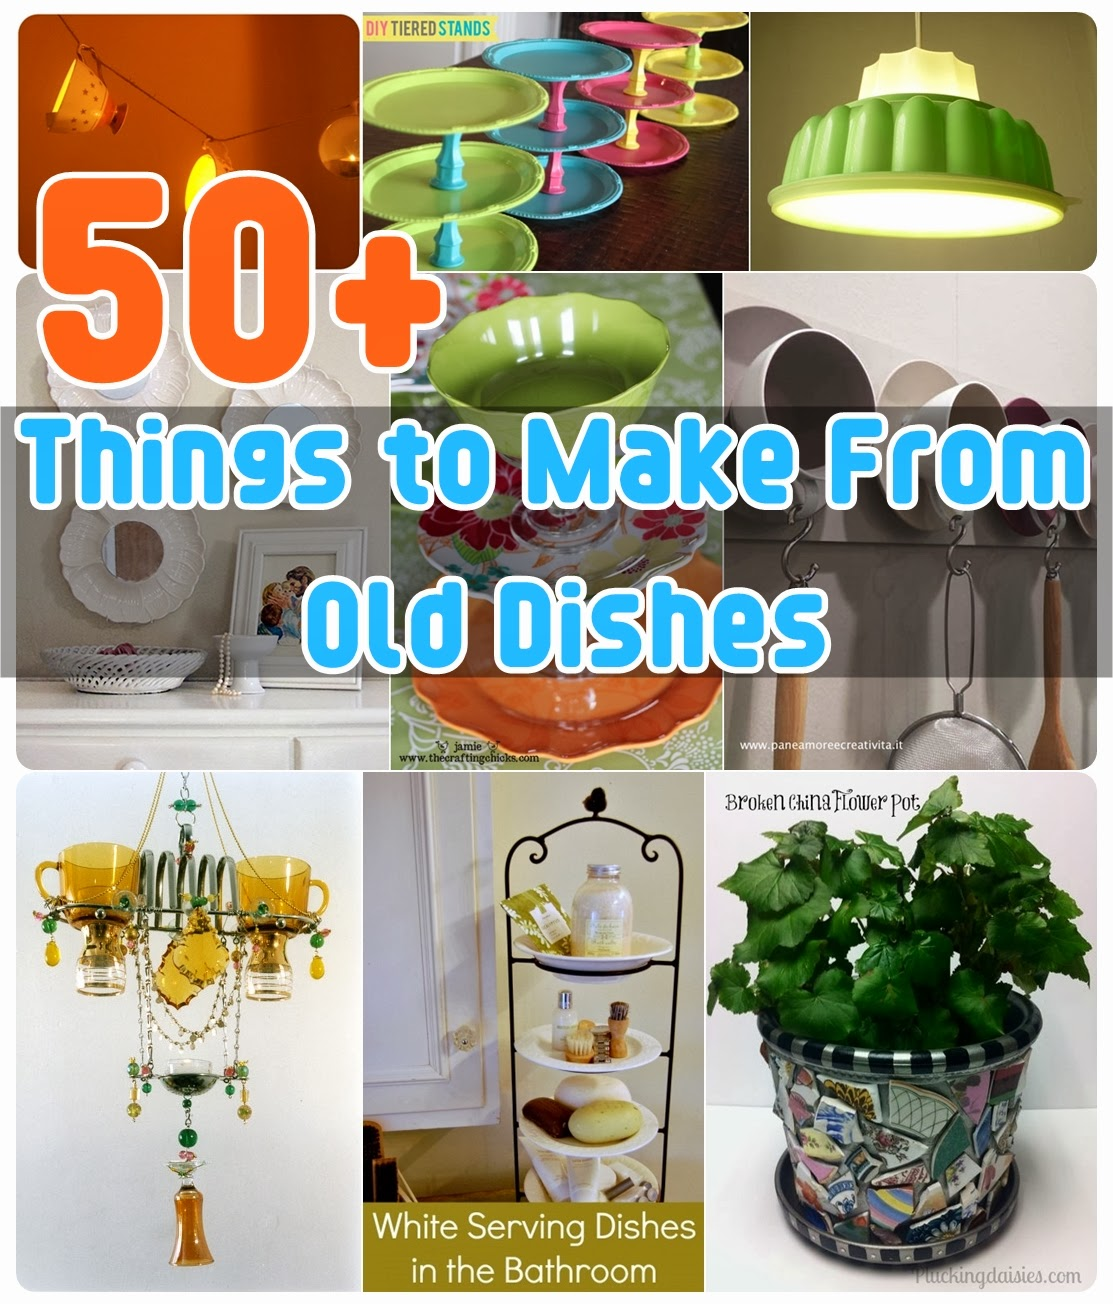 50 things to make from old dishes diy craft projects for Craft ideas for old dishes